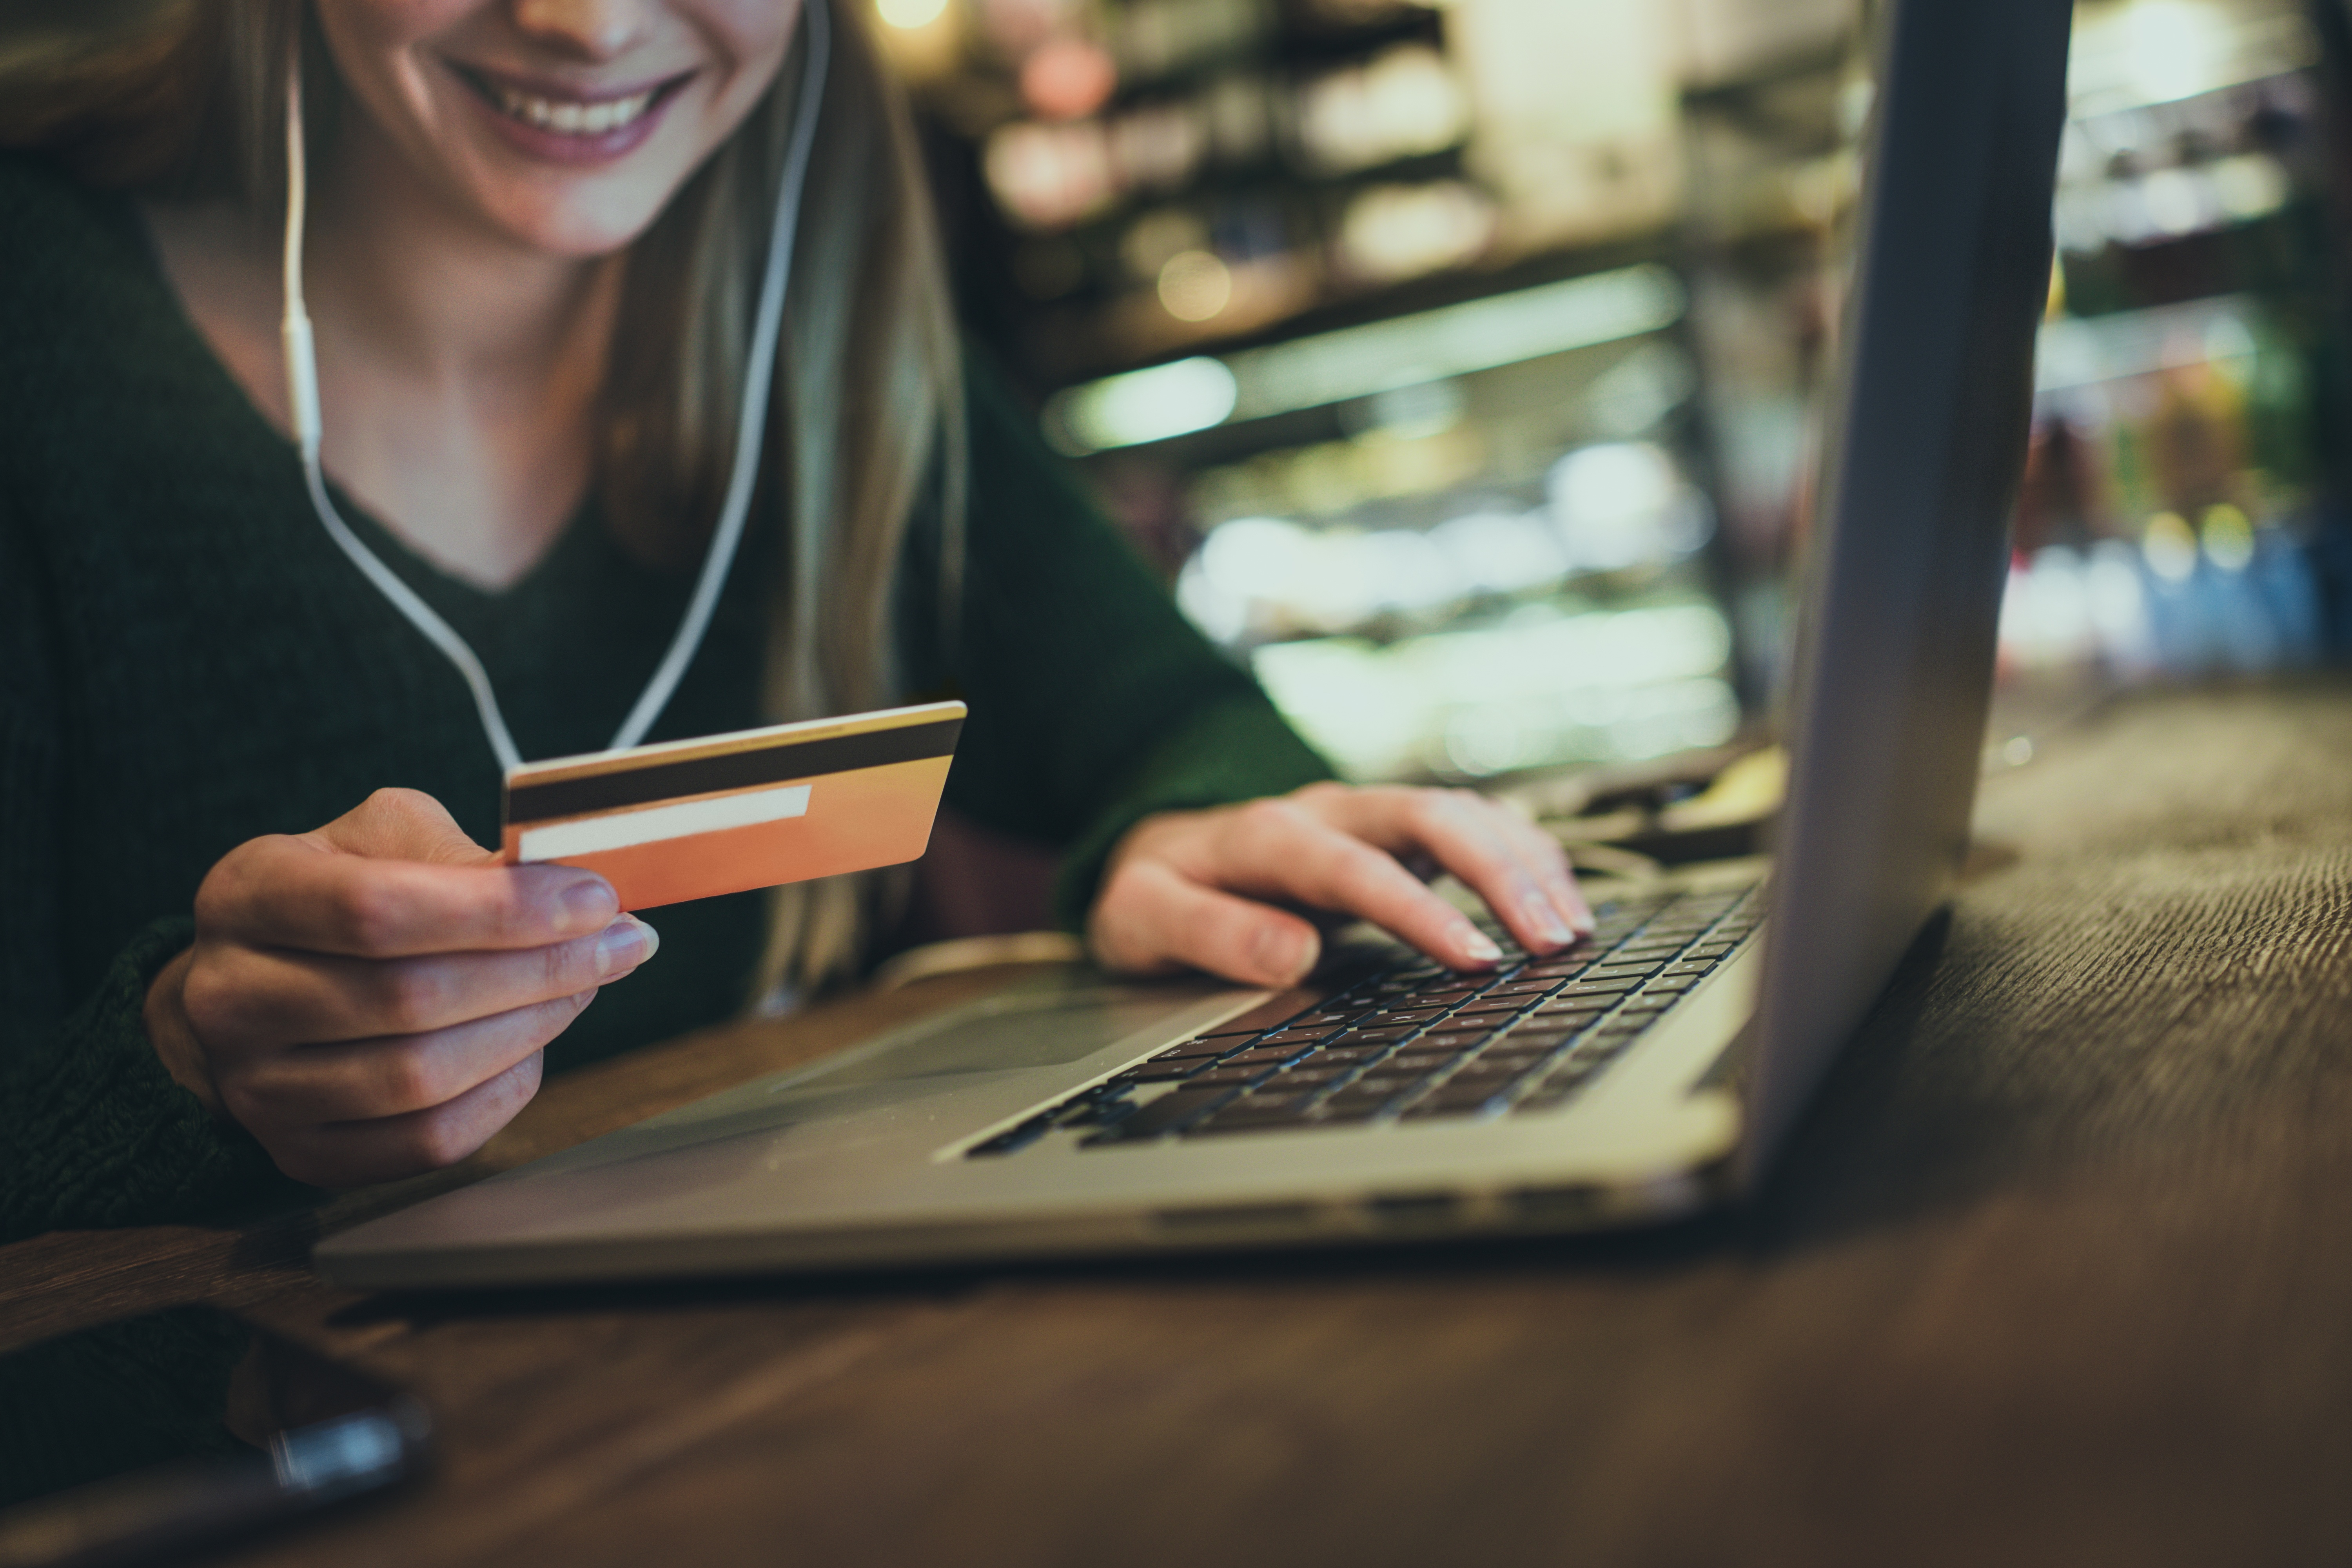 A person using a credit card to buy online